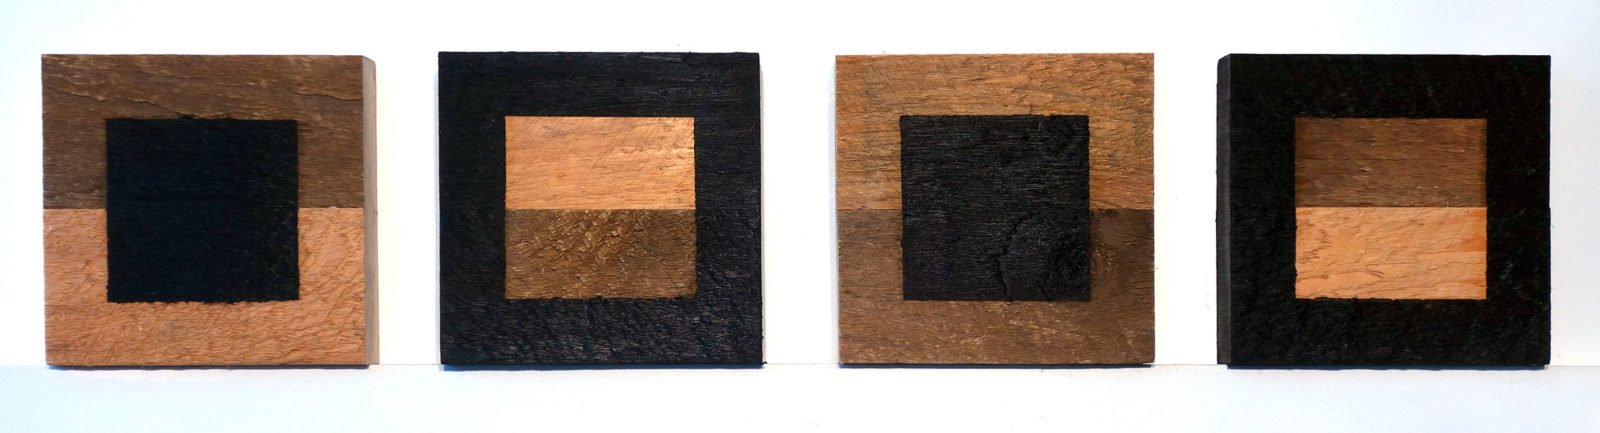 "Four ""Untitled"" entries to Rochester Contemporary 6x6 Show, oil on wood, Paul Dodd 2017"